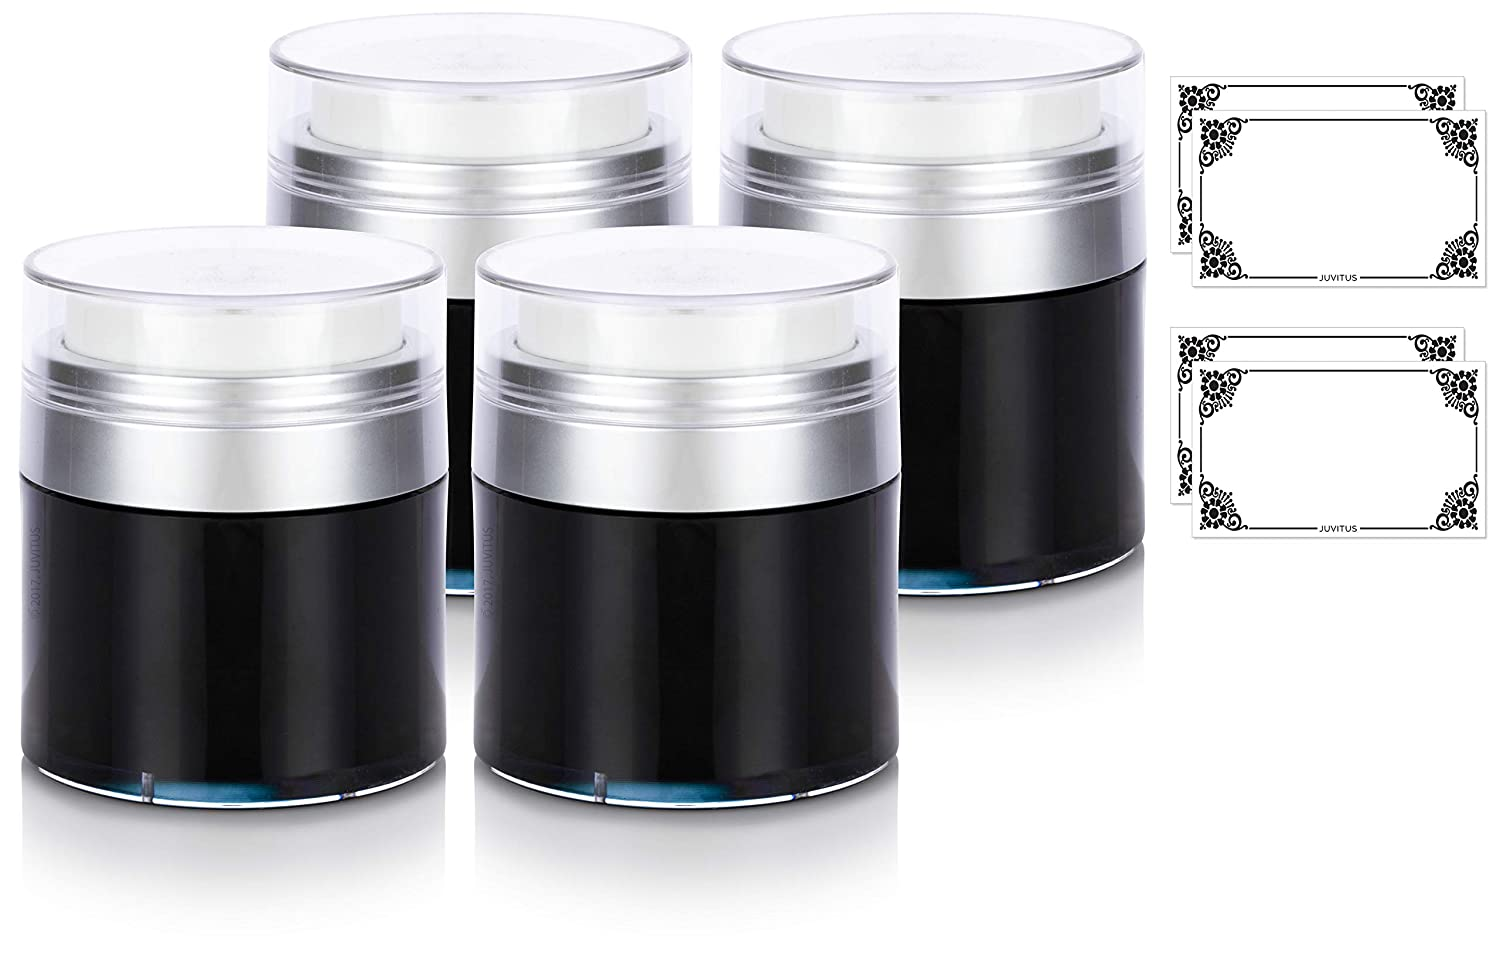 Black and Silver Airless Refillable Jar 1.7 oz / 50 ml (4 Pack) Keeps Out Bacteria and air Changing Oxidation from Your Skin Care Products - Durable, Leak Proof, and shatterproof for Home or Travel